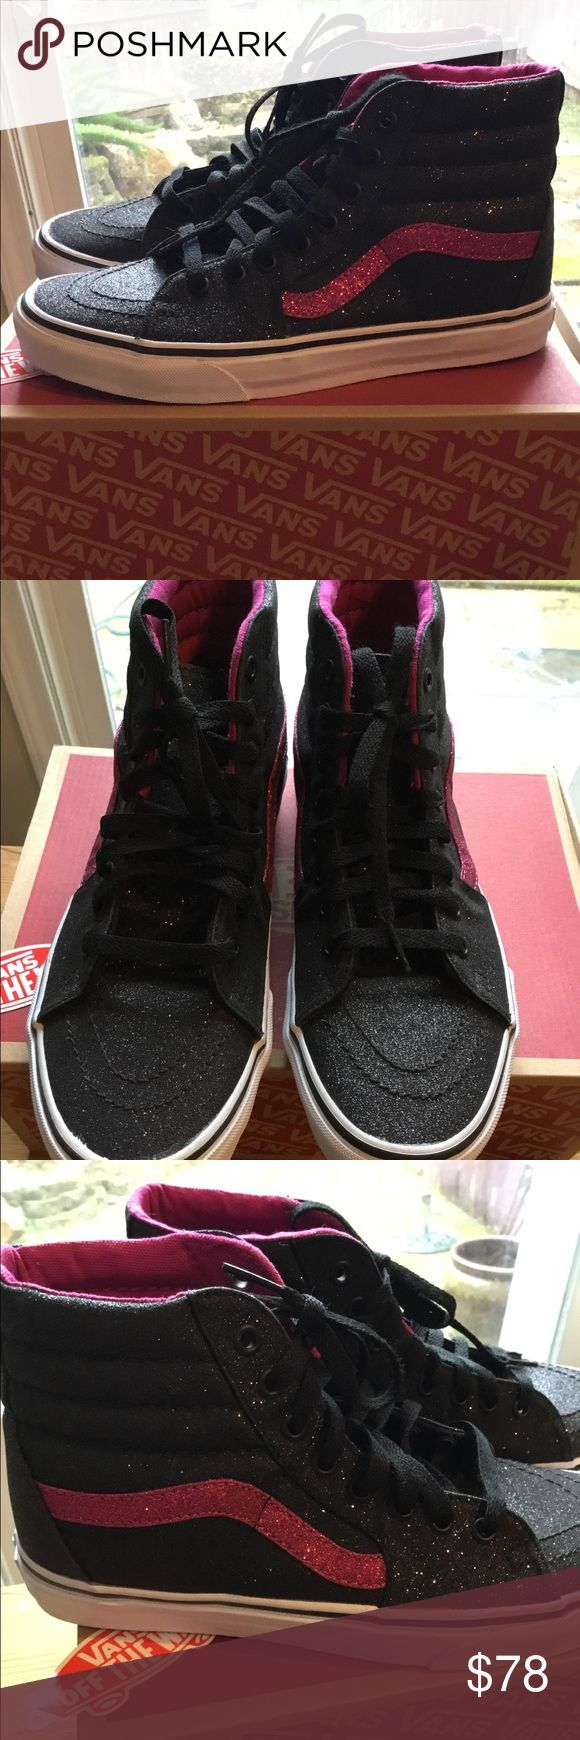 VANS sparkly black & Pink NWOT 9 1/2 I'm selling a pair of cool black sparkle w/dark pink strip Vans , I purchased them 1/2 size too big so I'm trying to get some of my money back.. these are awesome I was so excited I got the wrong size lol! You'll love these if you love the look and comfort of vans sneakers Vans Shoes Sneakers